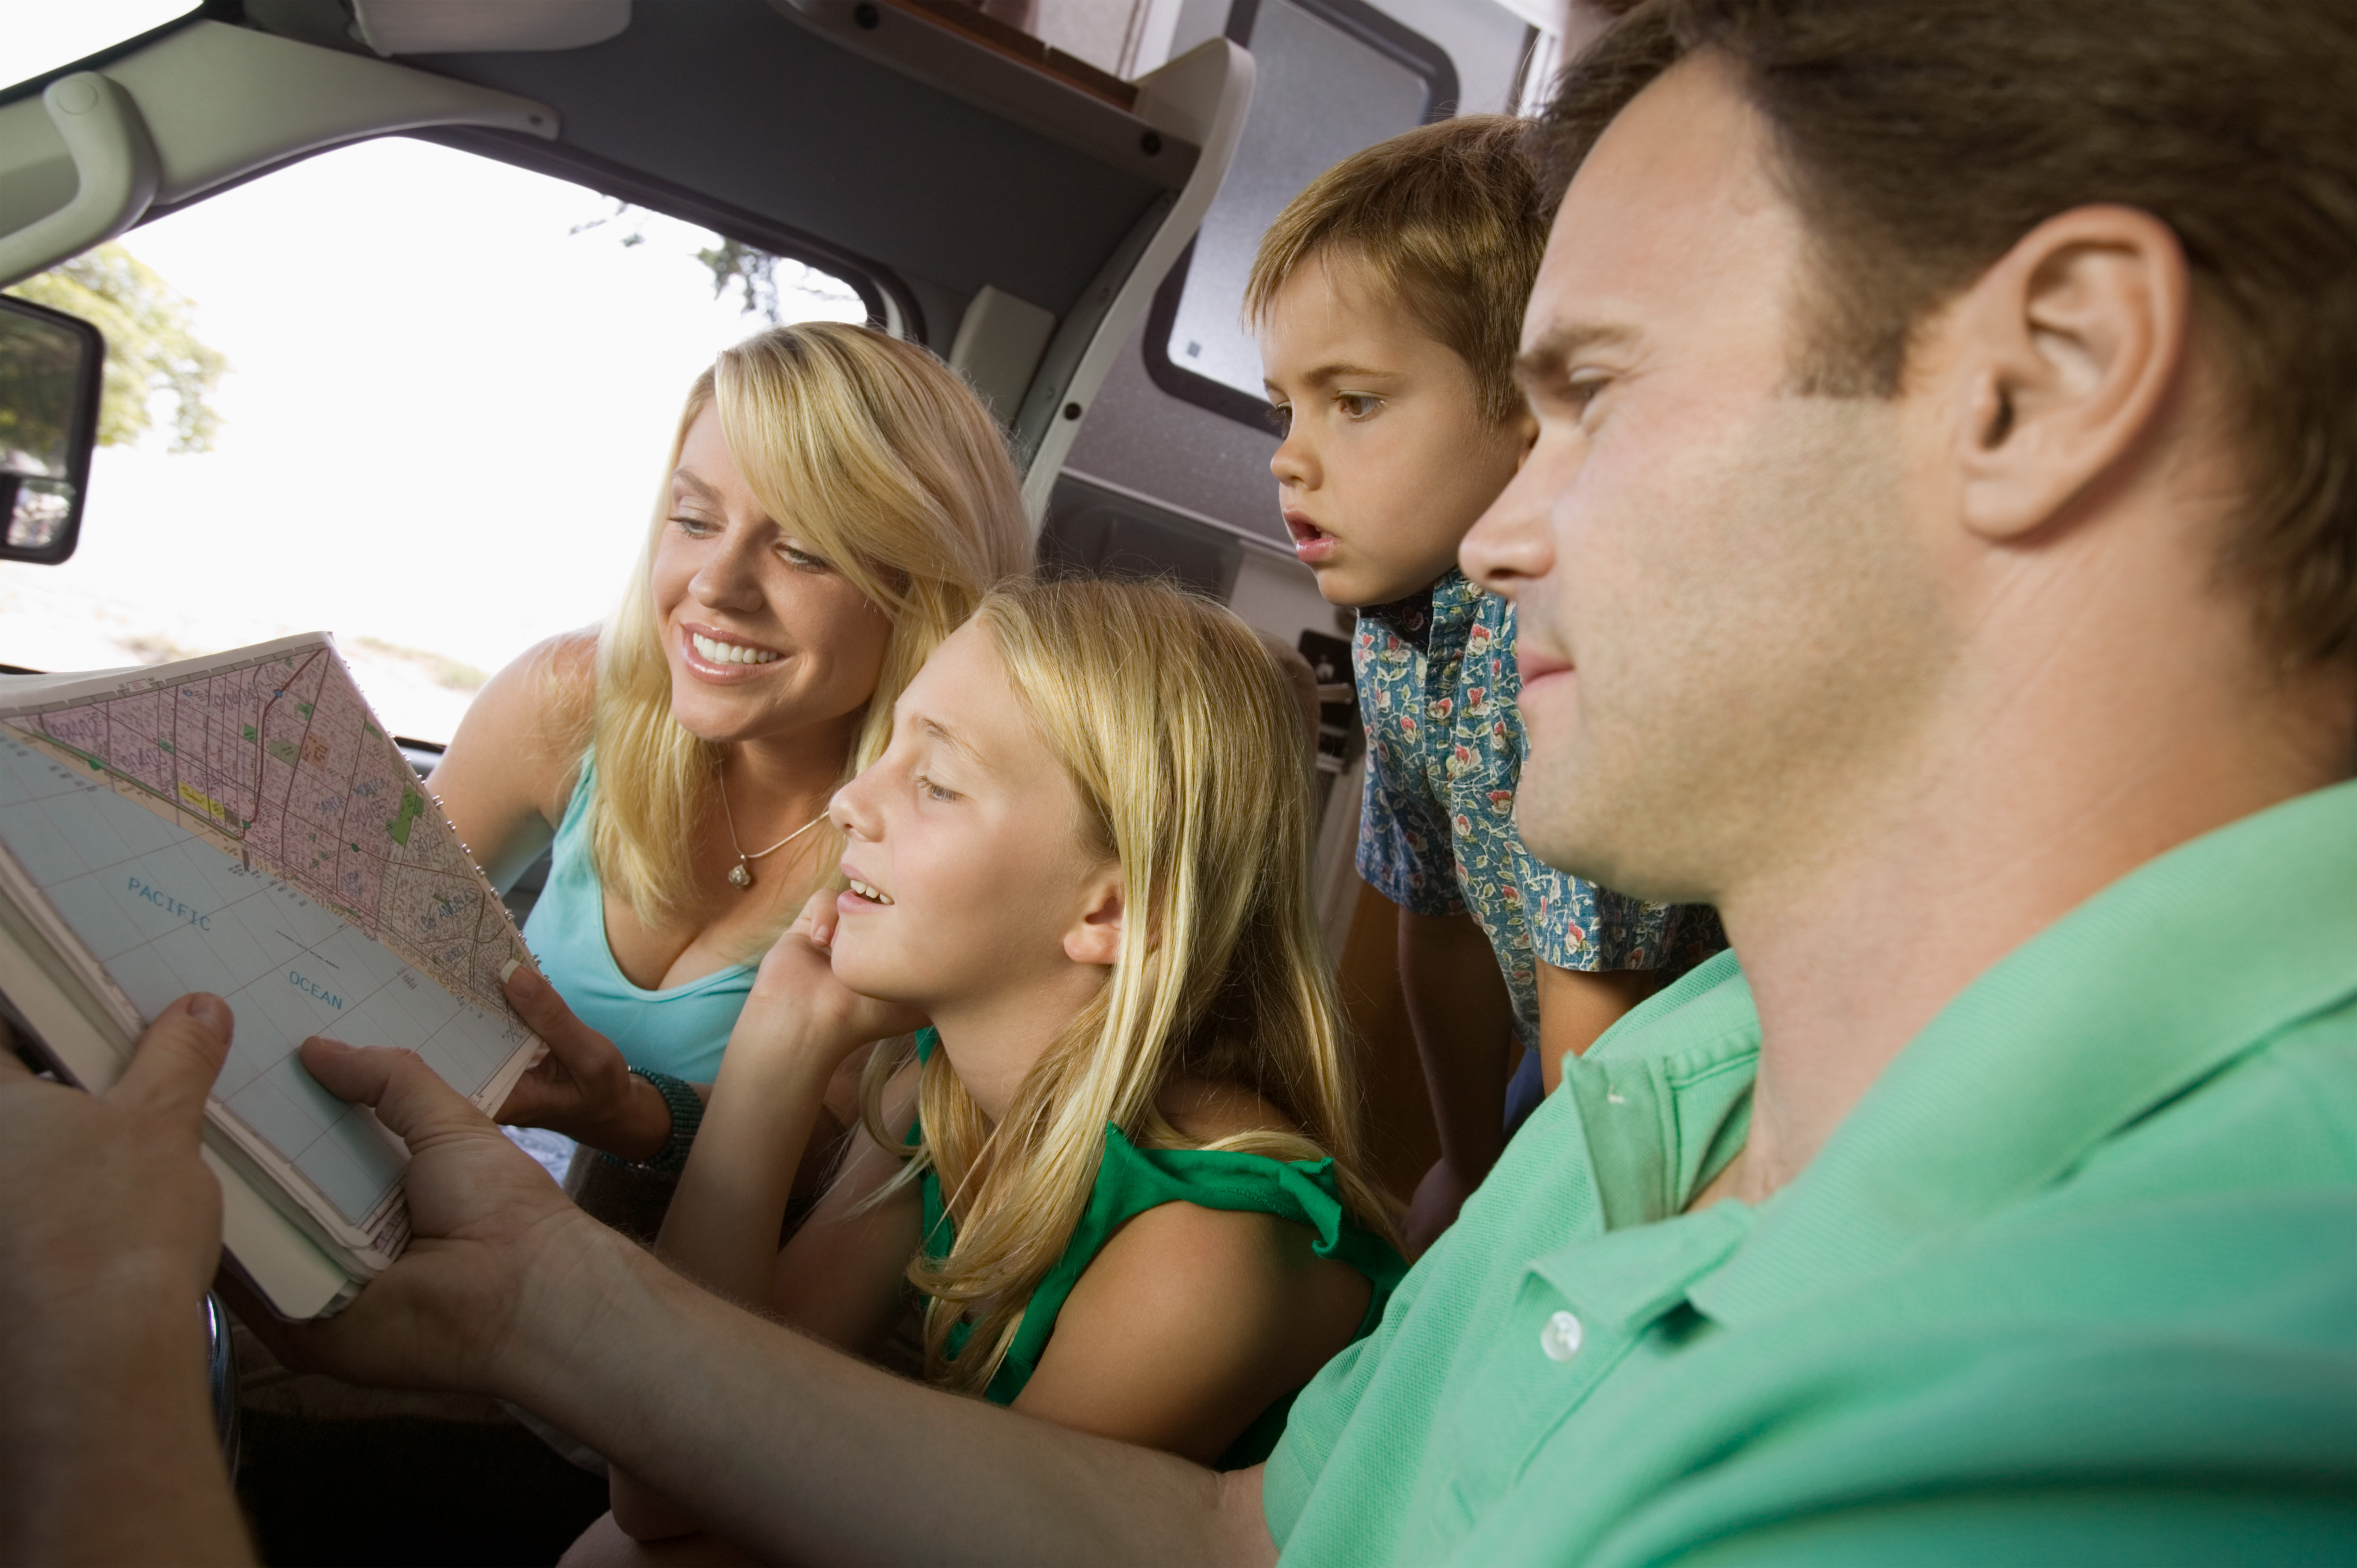 Road trips are a good option to help teach teen drivers about car safety.